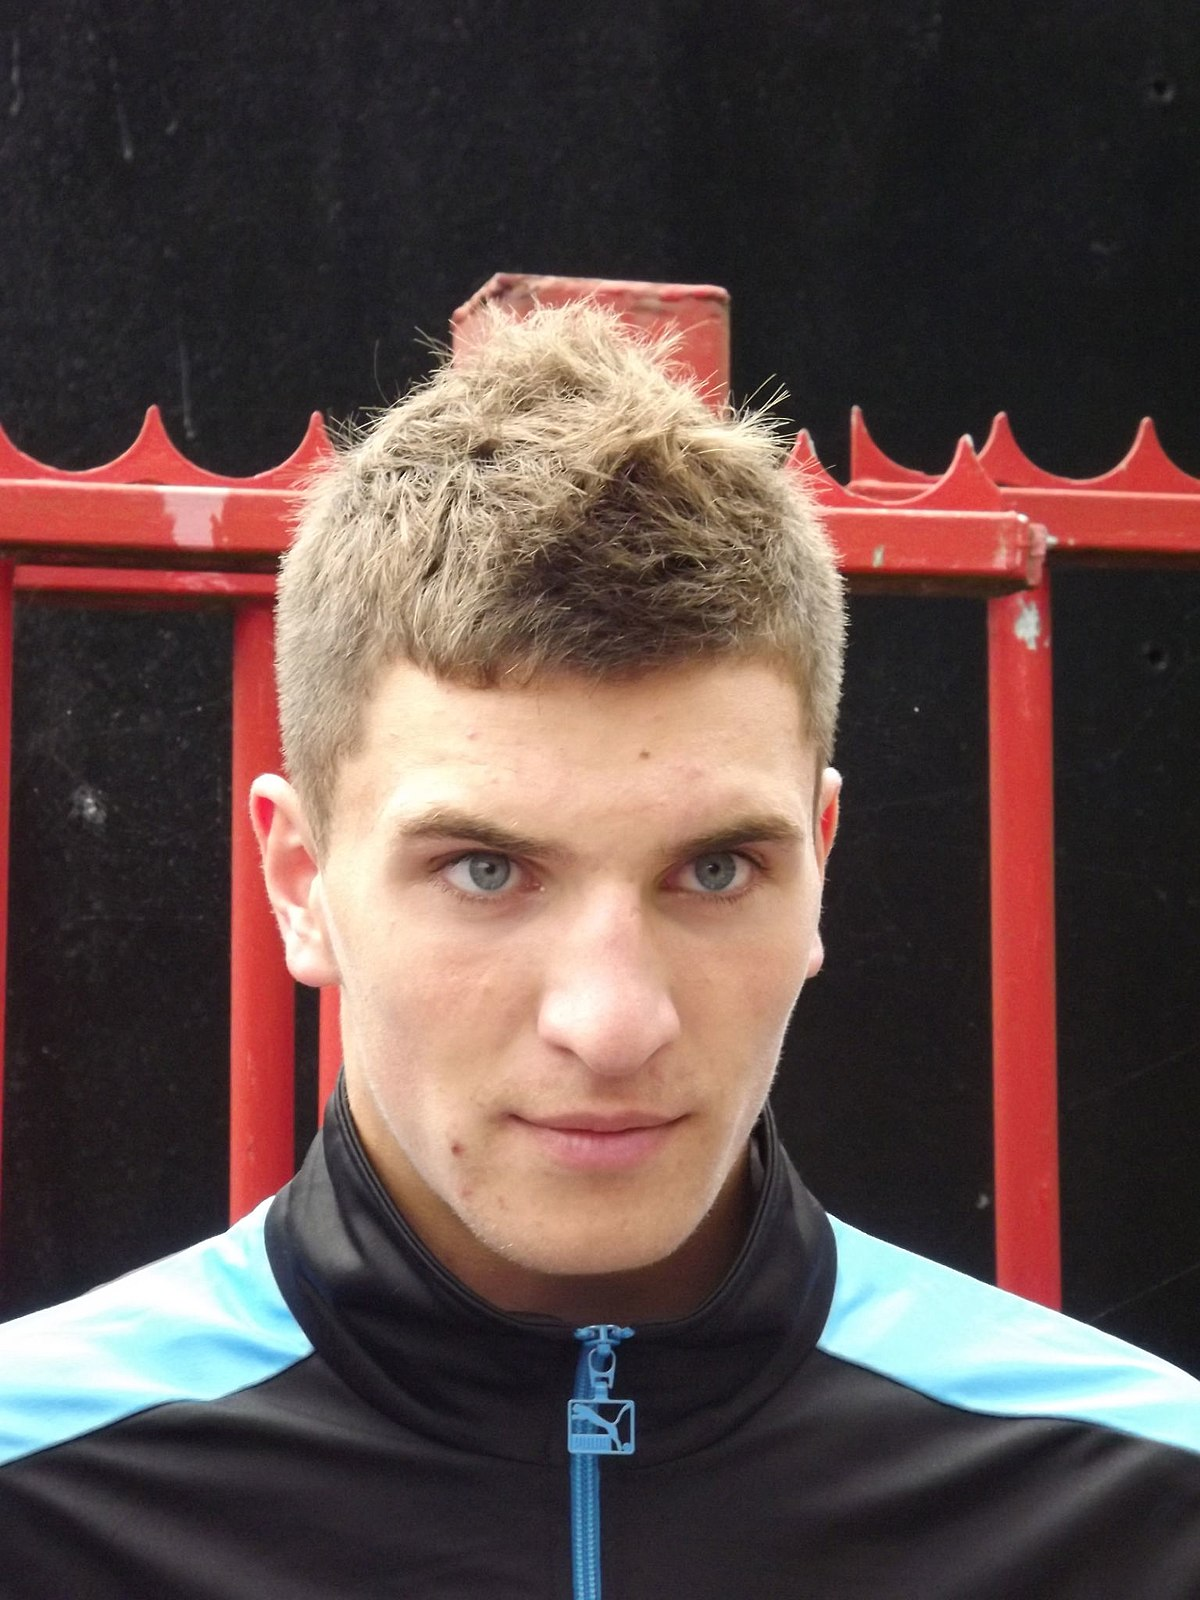 Thomas Meunier earned a  million dollar salary - leaving the net worth at 7 million in 2018